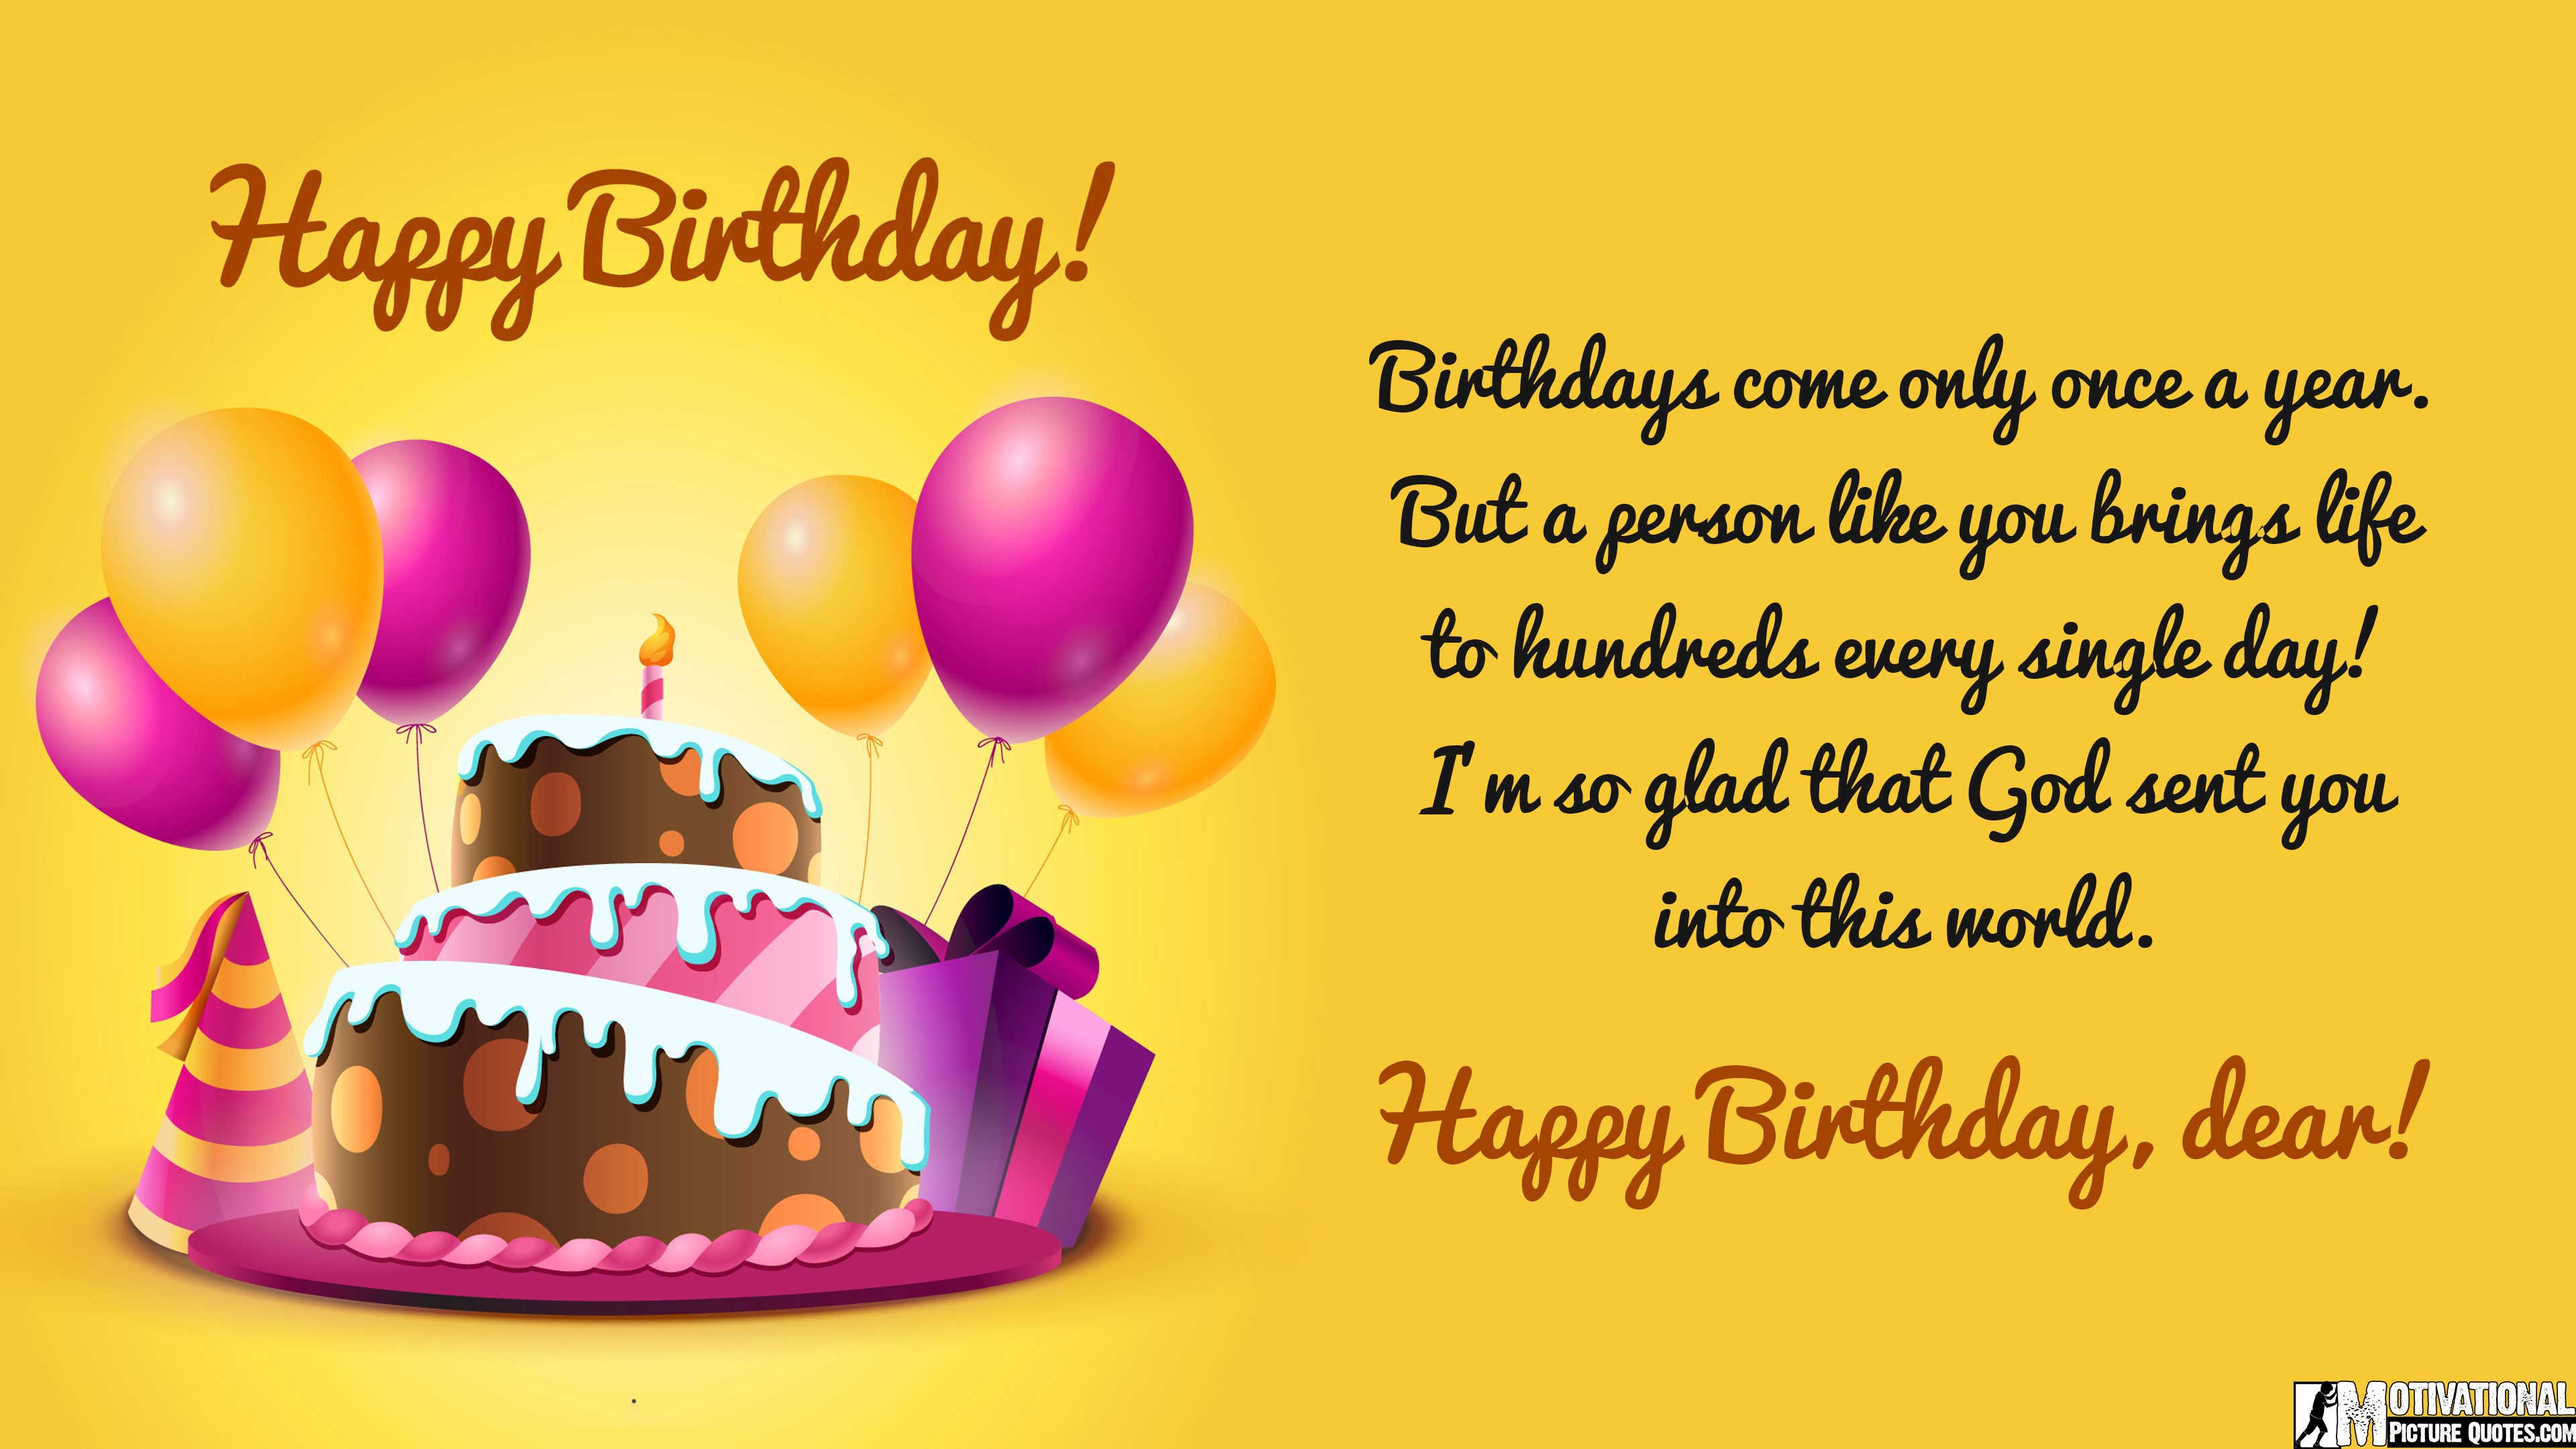 Happy birthday wishes and quotes - Best Happy Birthday Quotes For Him